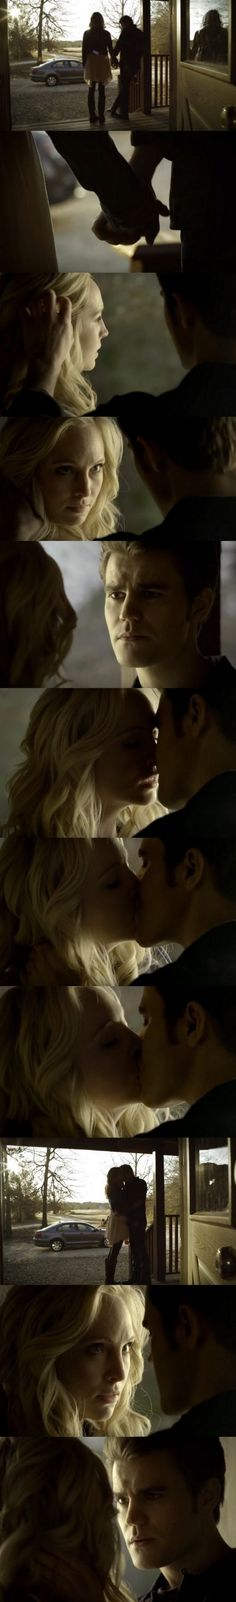 The Vampire Diaries TVD 6x14 - Steroline first kiss ♥♥♥ FINALLY!!!